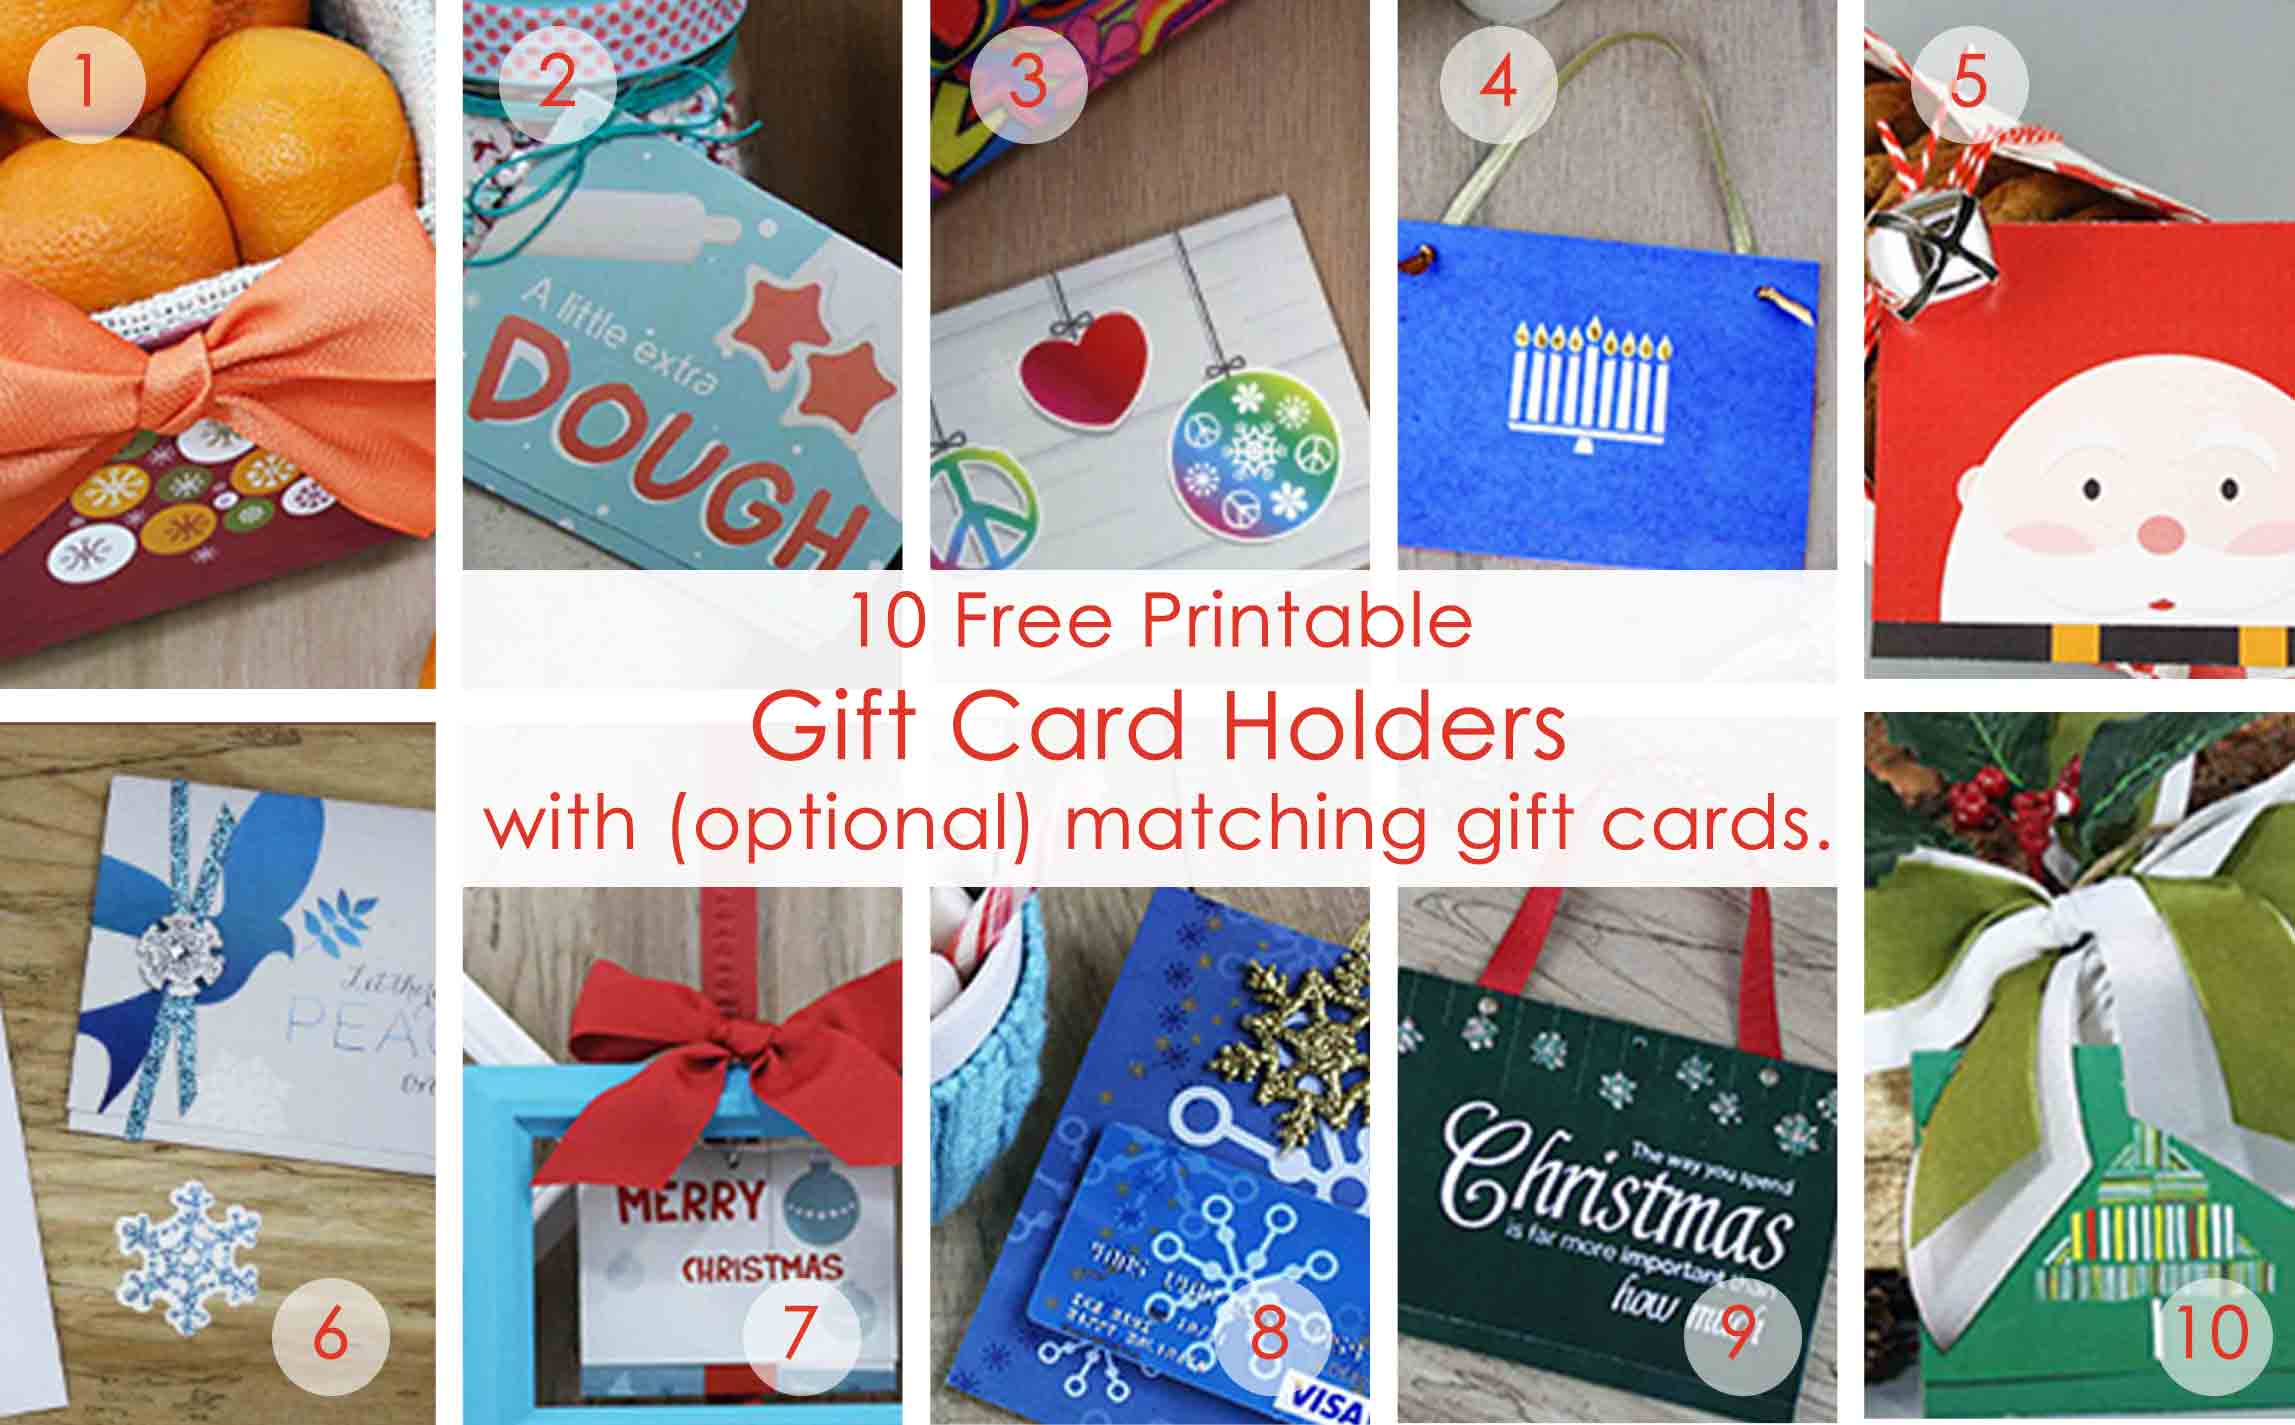 OVER 50 Printable Gift Card Holders For The Holidays